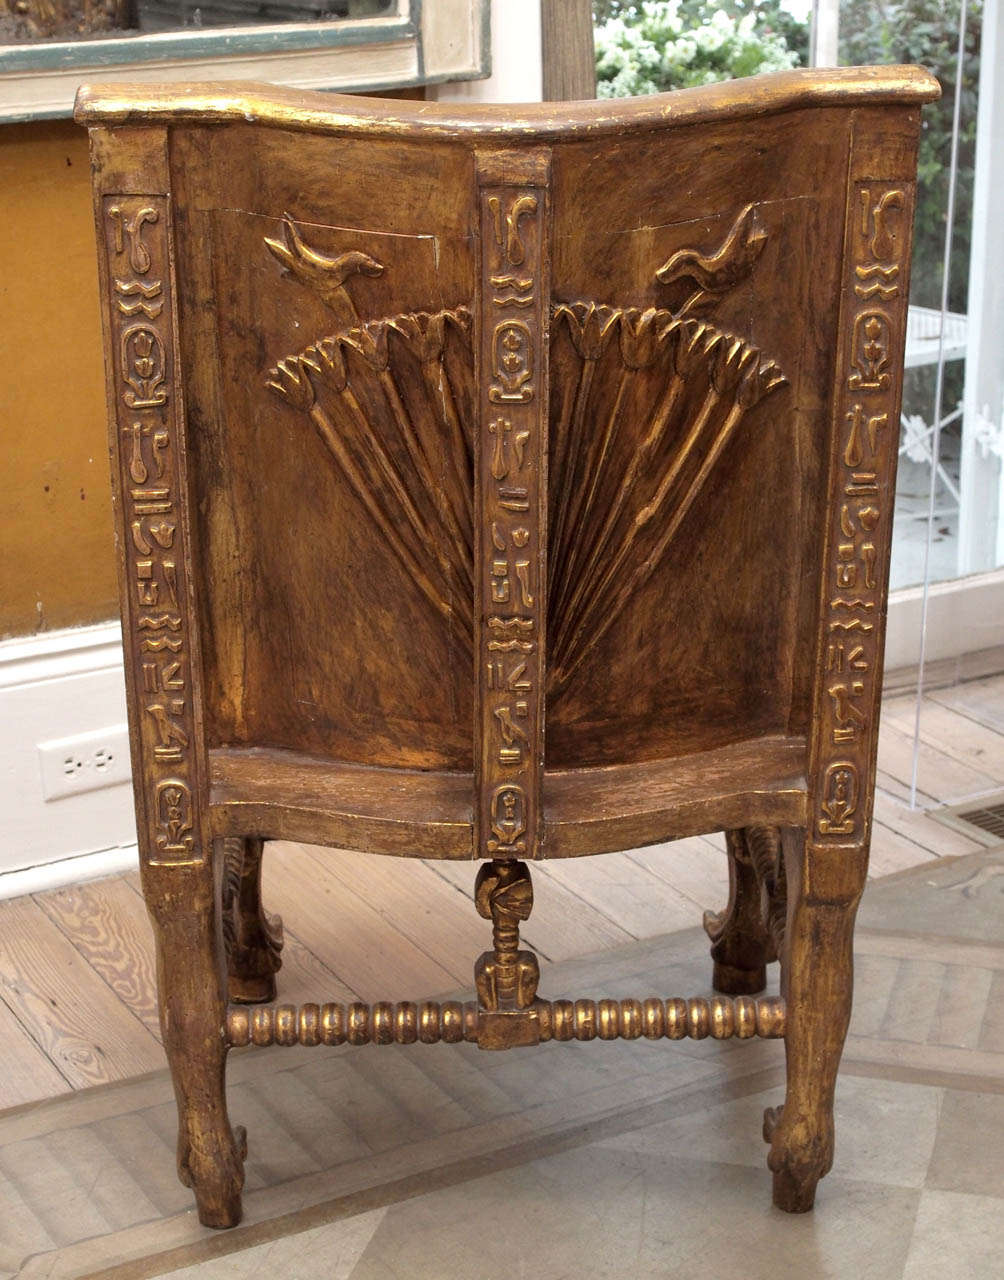 Pair of Egyptian Revival Giltwood Throne Chairs 10